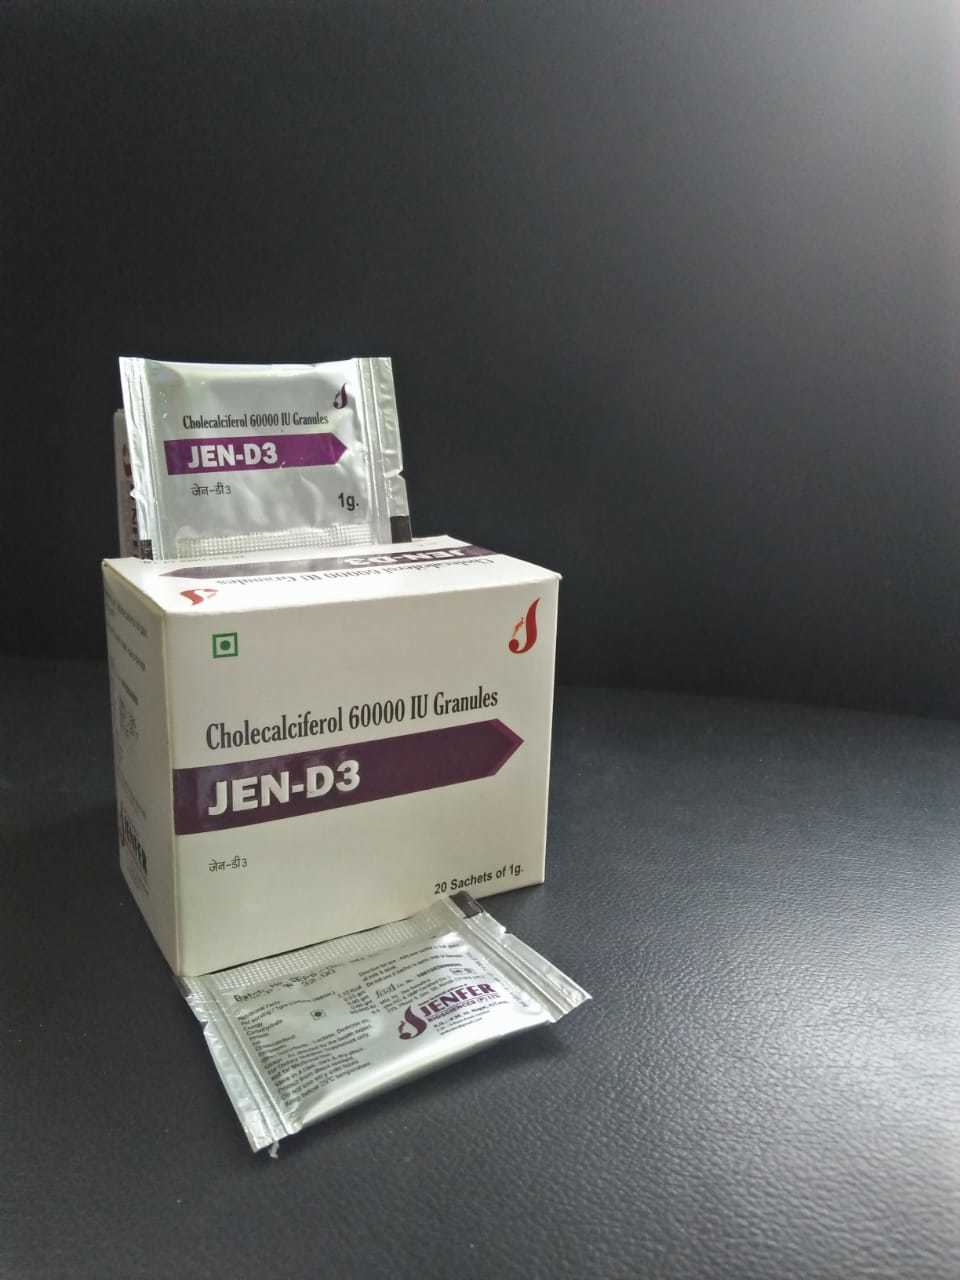 Cholecalciferol Tablet